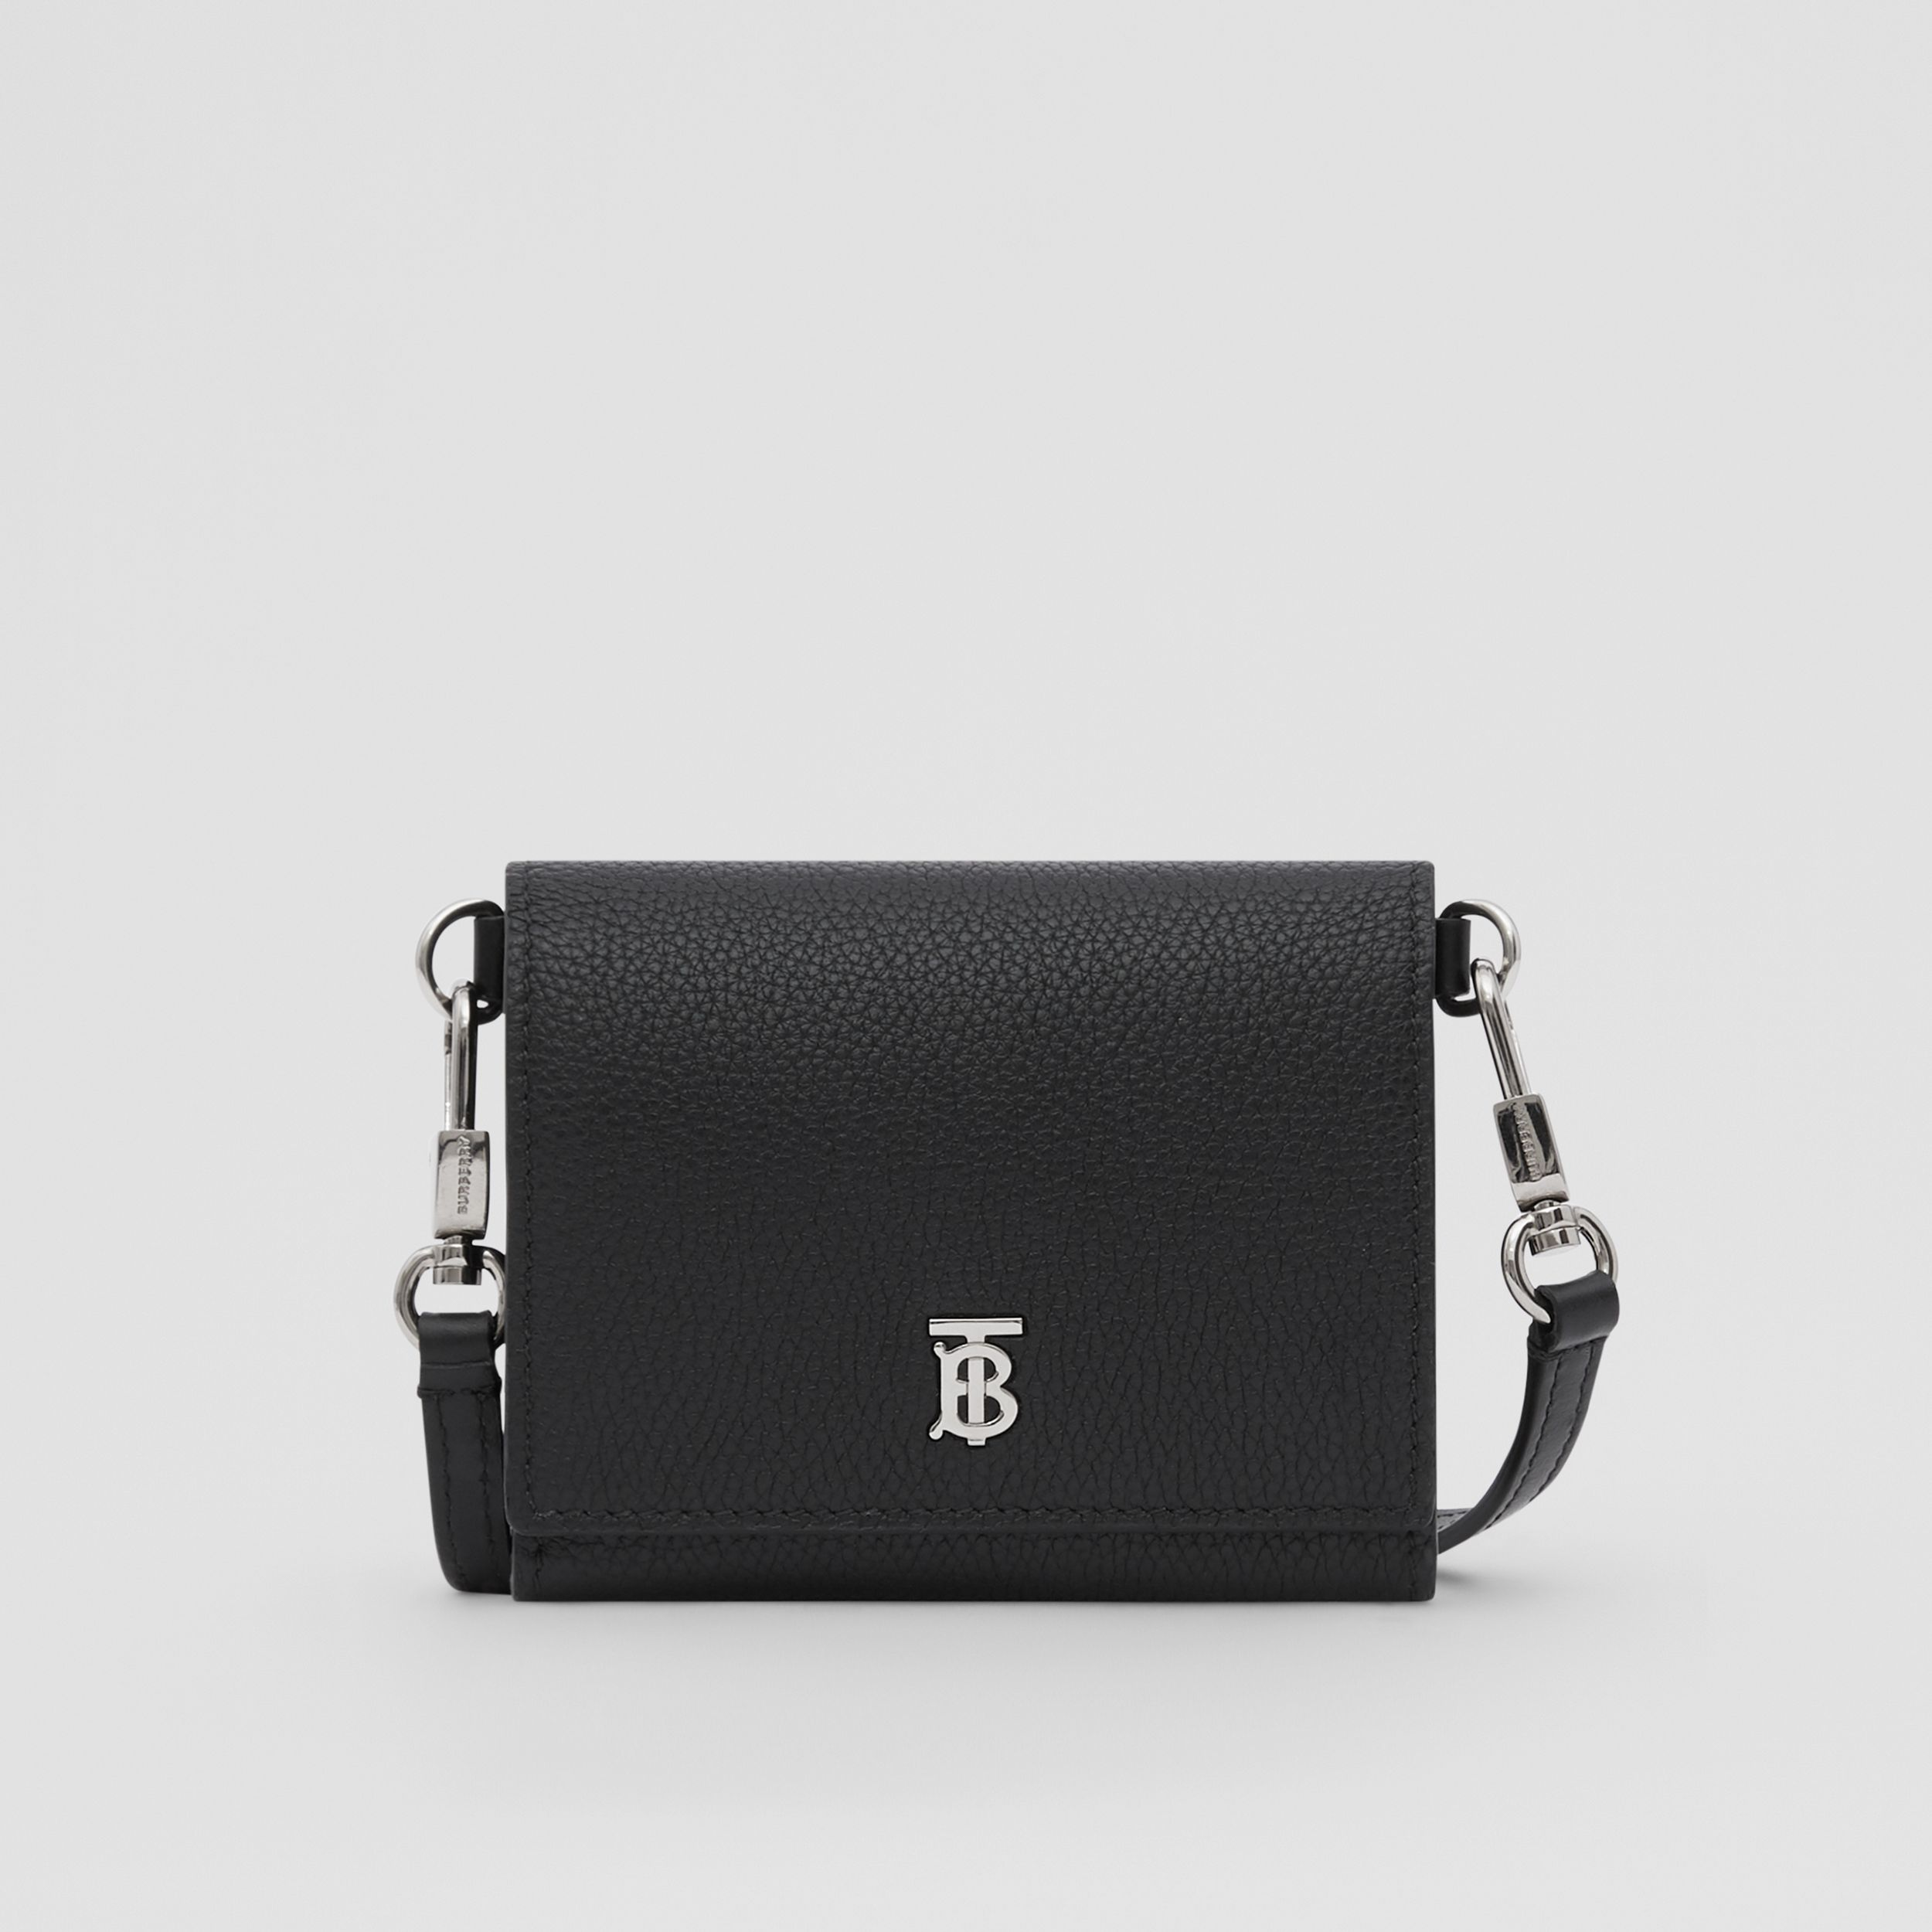 Small Grainy Leather Wallet with Detachable Strap in Black | Burberry - 1